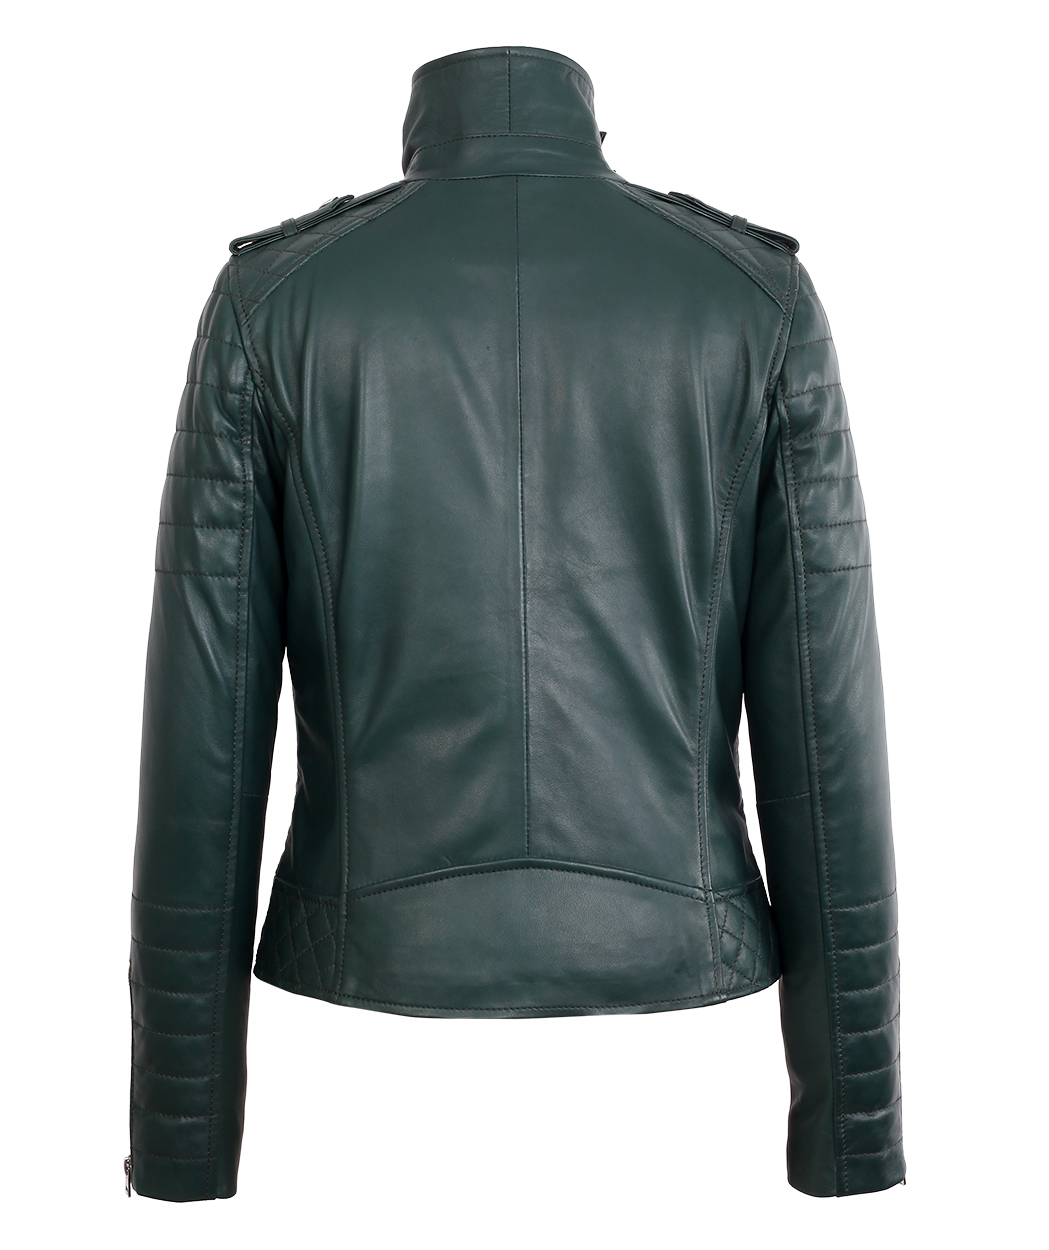 7773c1852bde ... Womens Biker Green Lambskin Real Leather Jacket. Sale! IMG_6937 ·  IMG_6936 · IMG_6939